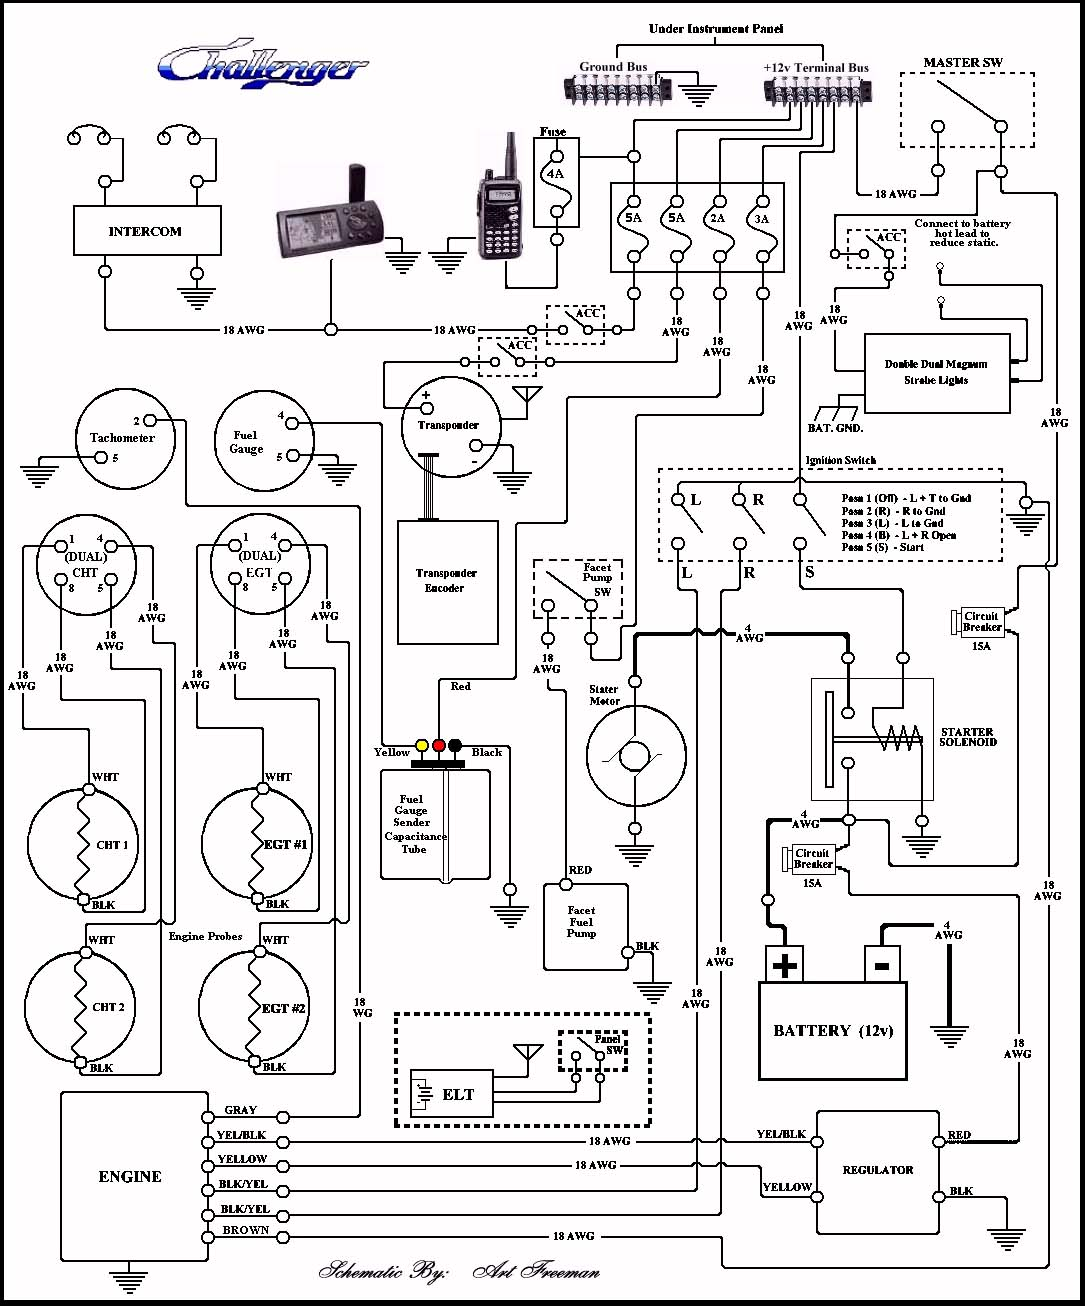 Schem_Analog basic wiring of fuselage, instruments and power source aircraft ignition switch wiring diagram at bayanpartner.co